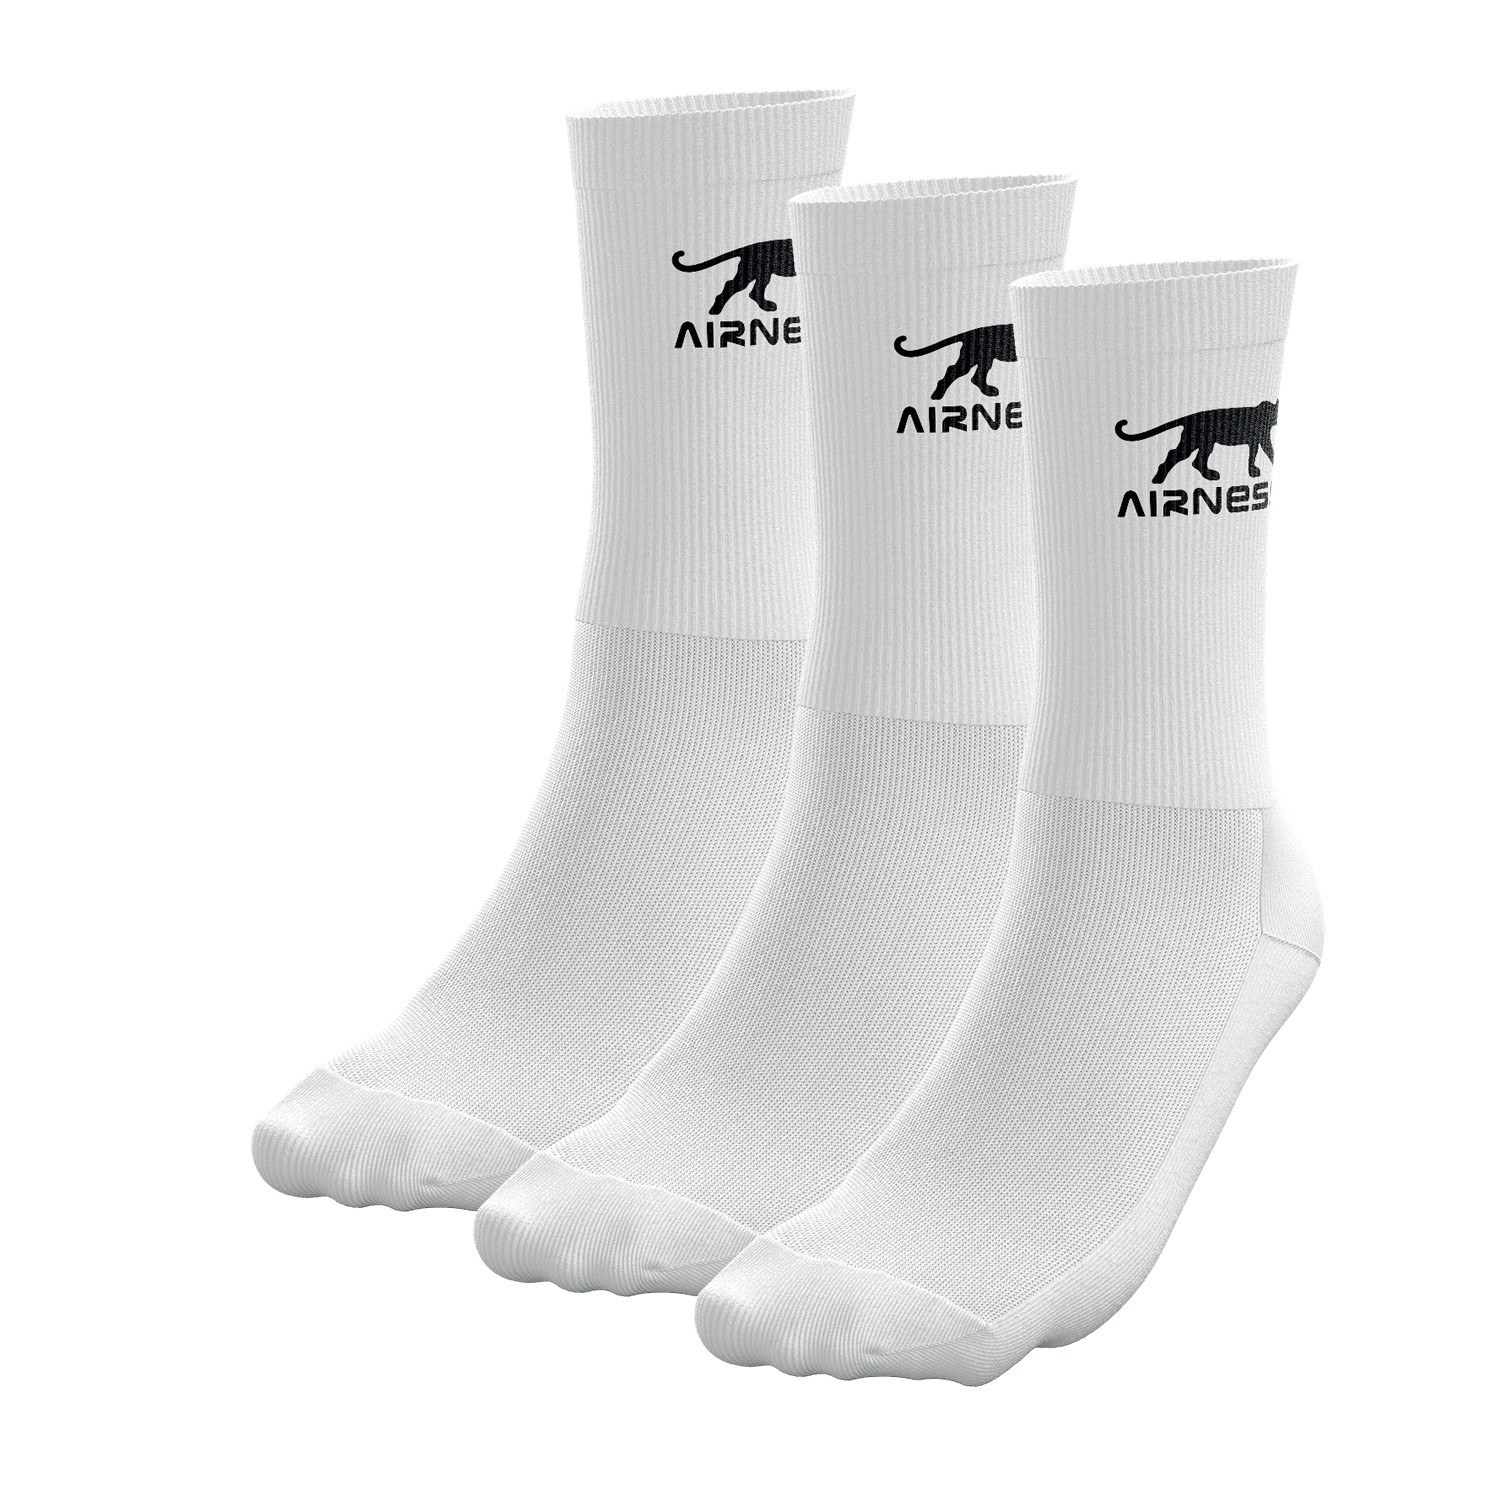 LOT DE 3 PAIRES DE CHAUSETTES HOMME AIRNESS TENNIS CORPORATE